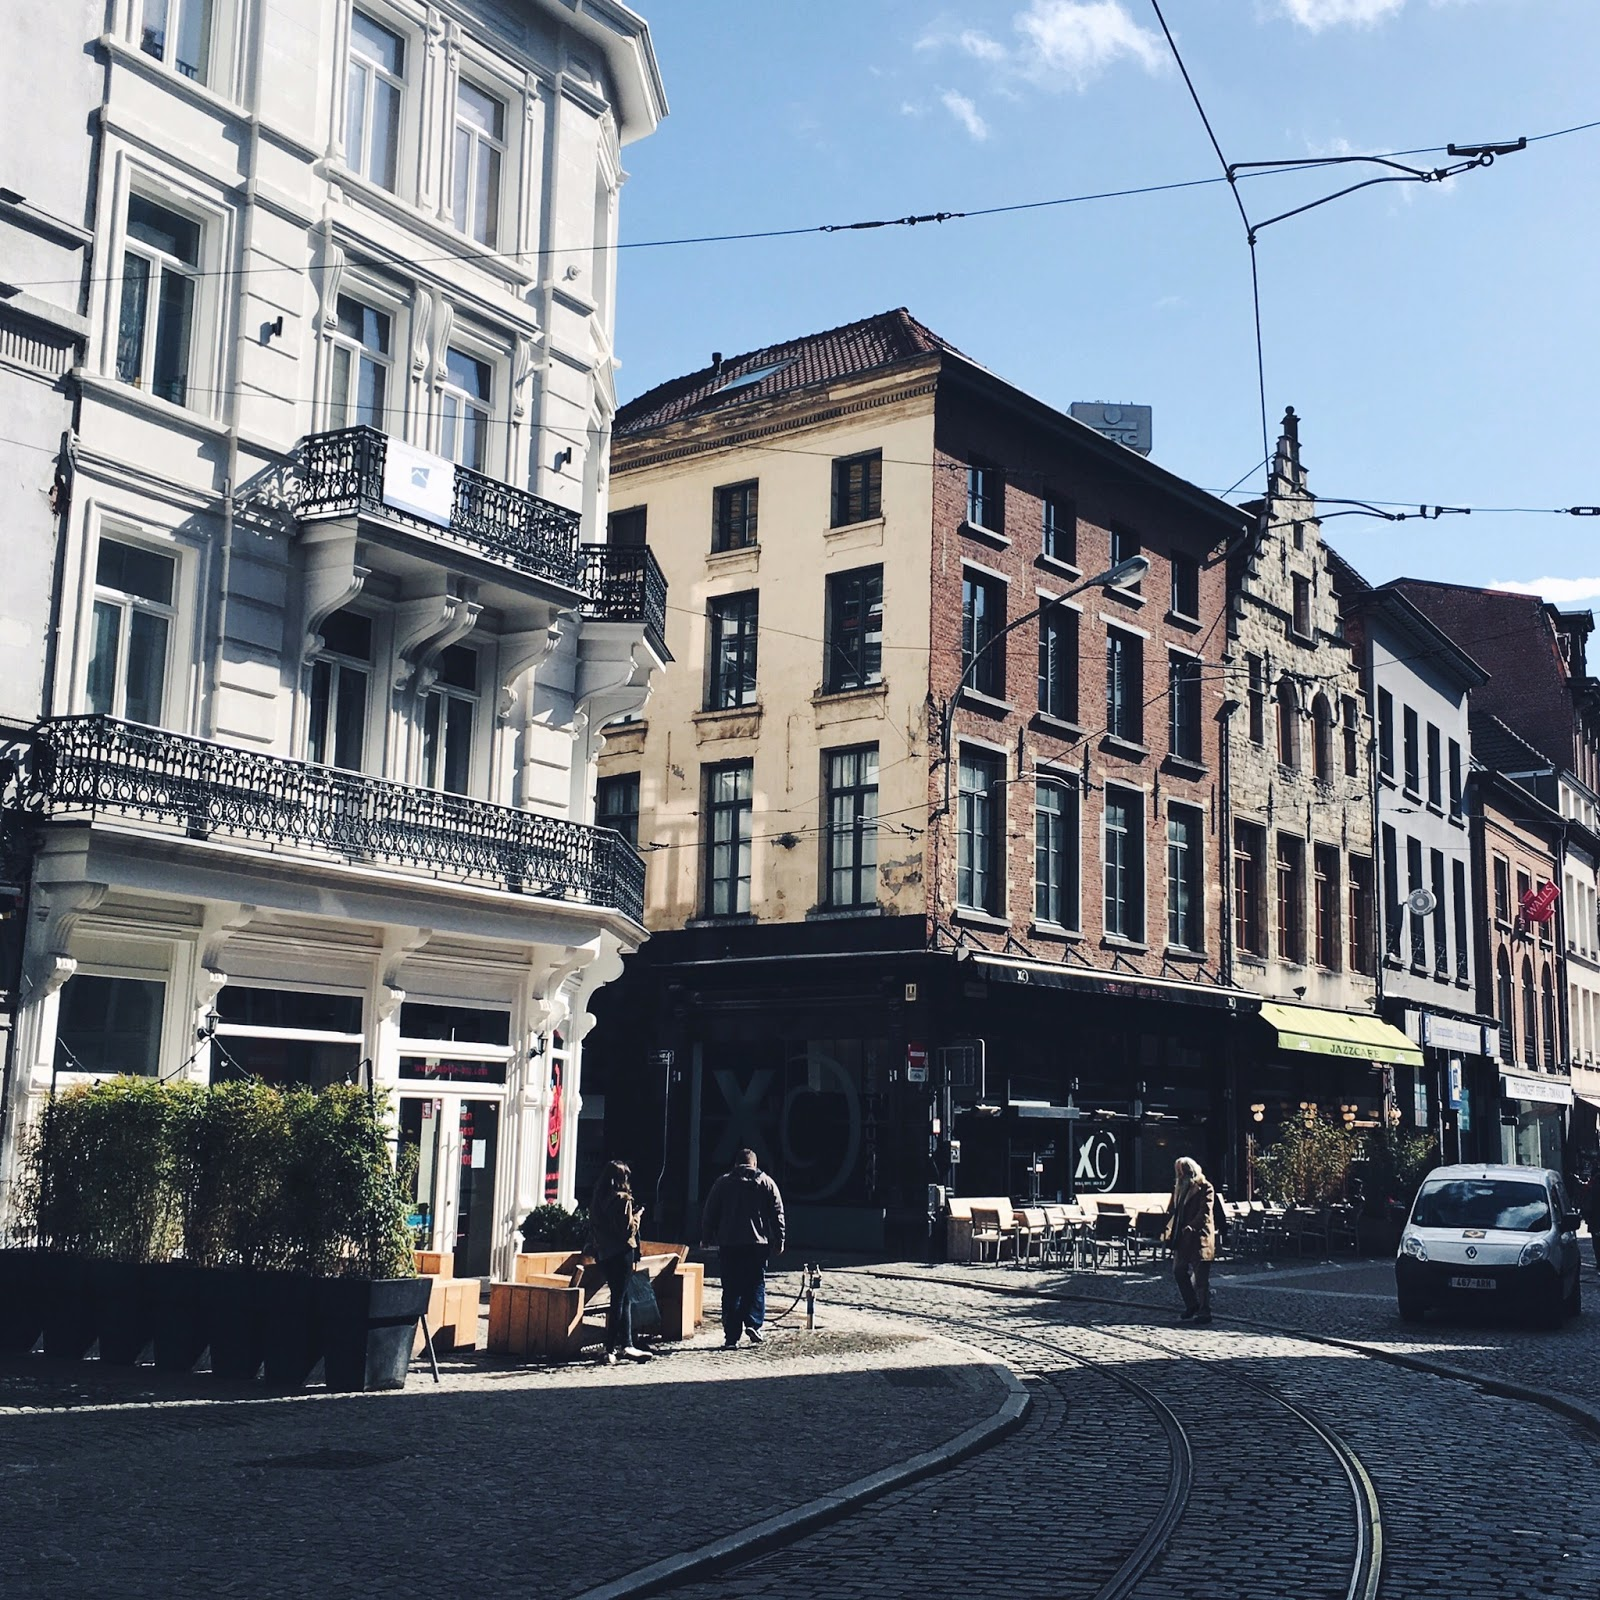 Antwerp travel diary